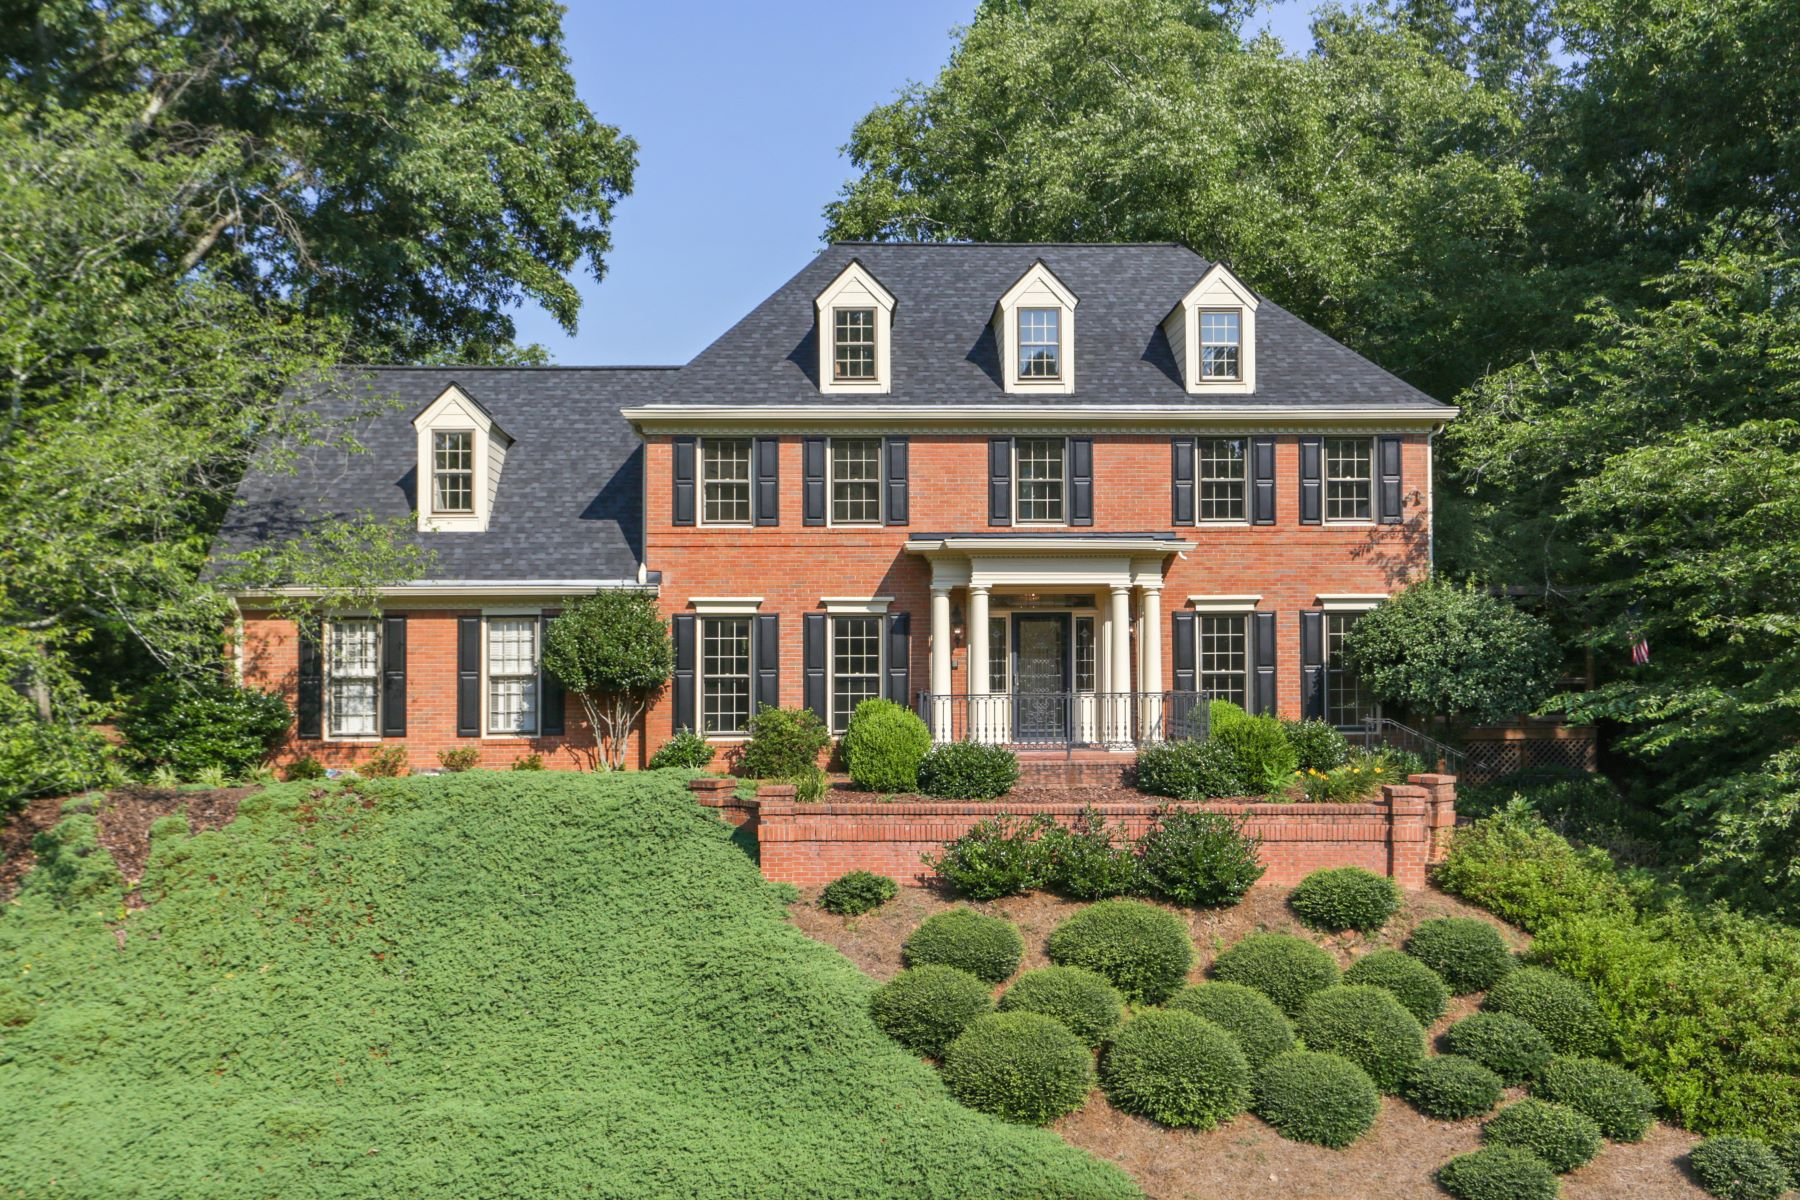 Property のために 売買 アット Stunning Brick Traditional in Popular Country Club 345 Richfield Ct, Roswell, ジョージア 30075 アメリカ